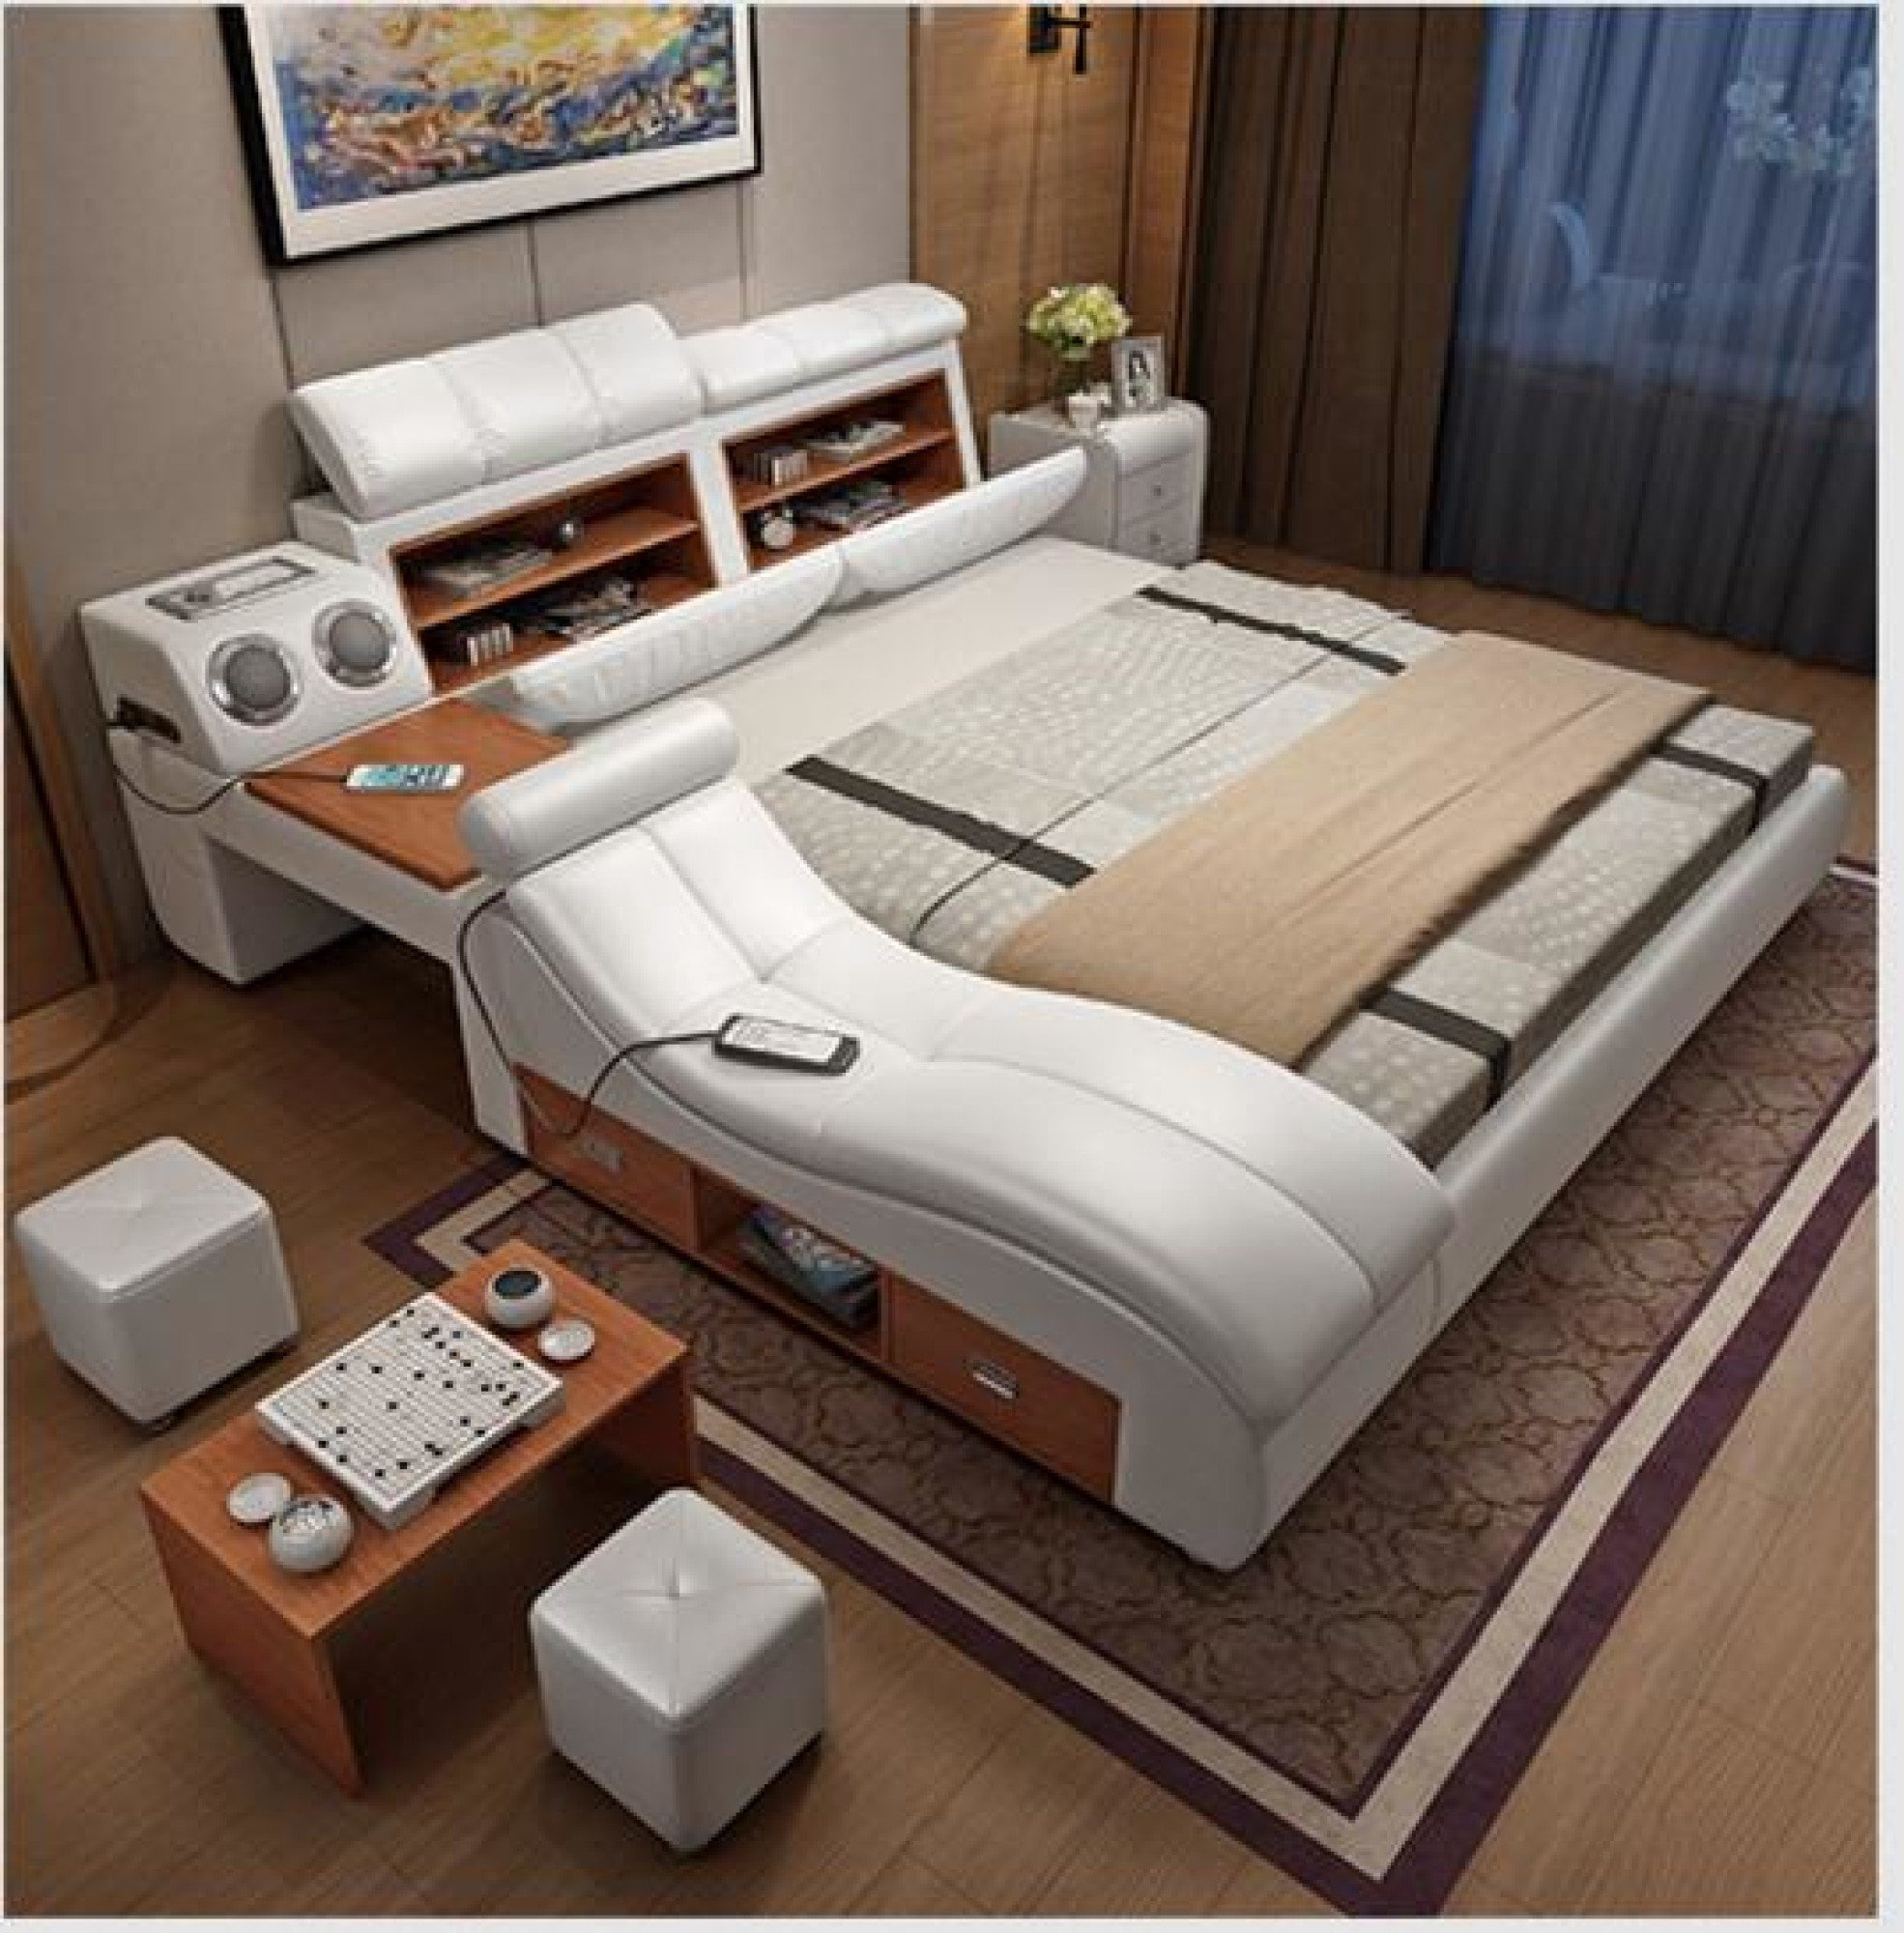 Image of Soft Leather Bed Frame With Massager And Storage